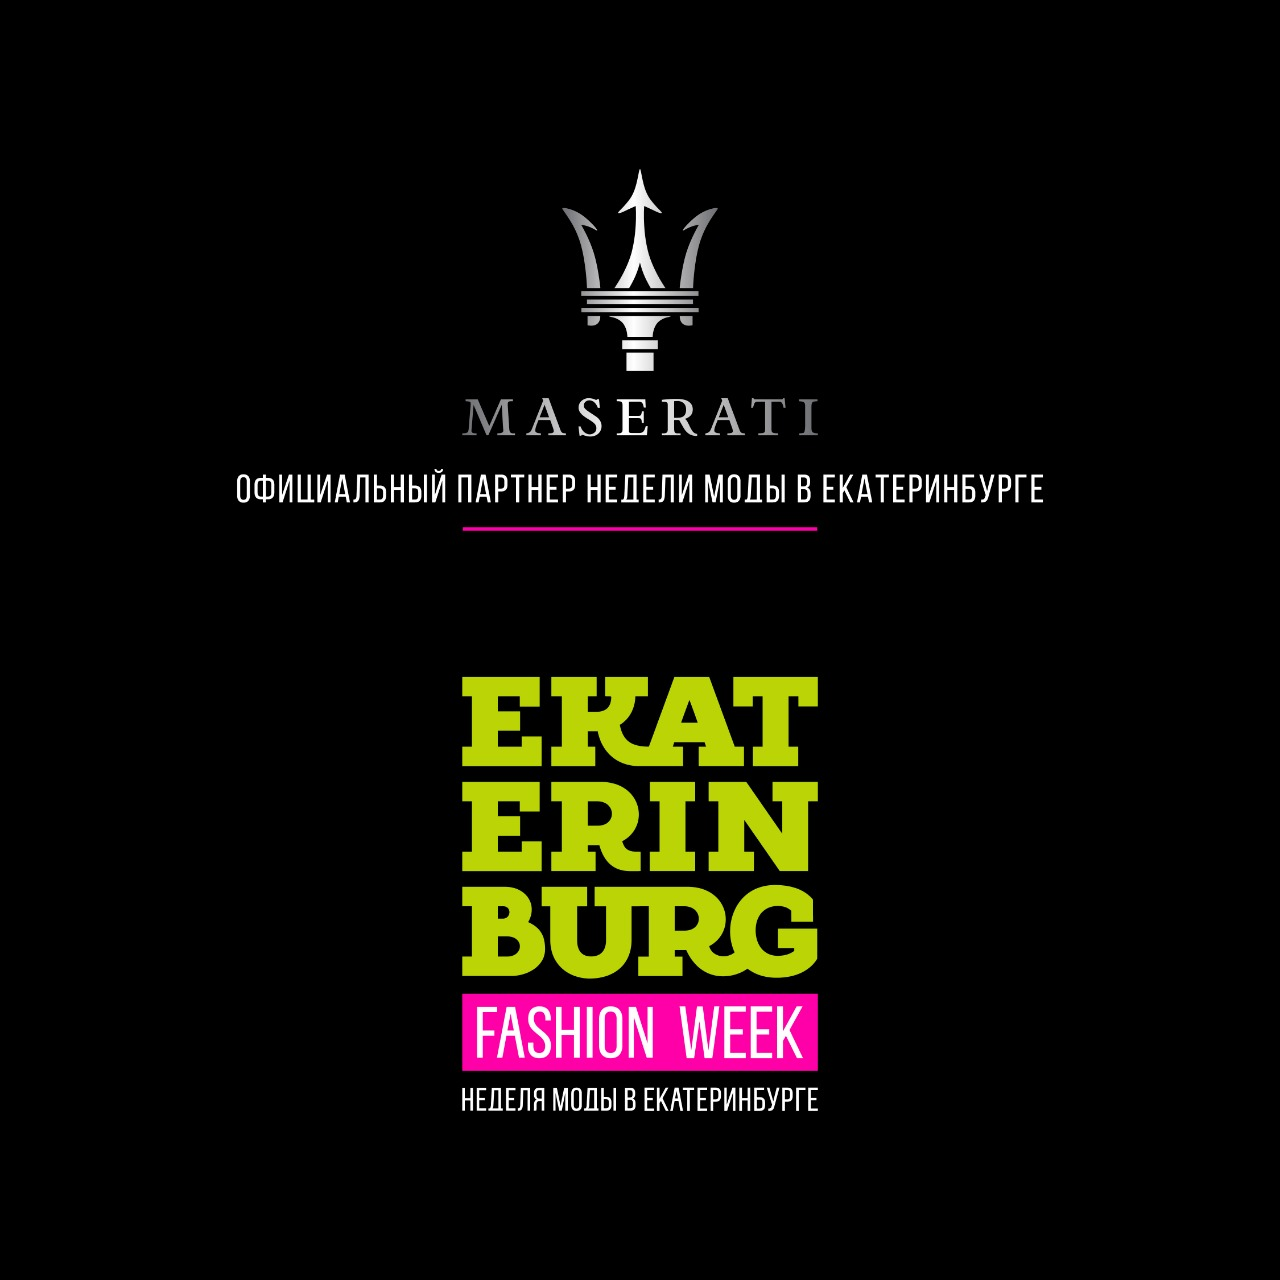 Официальный партнёр  EKATERINBURG FASHION WEEK - Мазерати Центр Екатеринбург